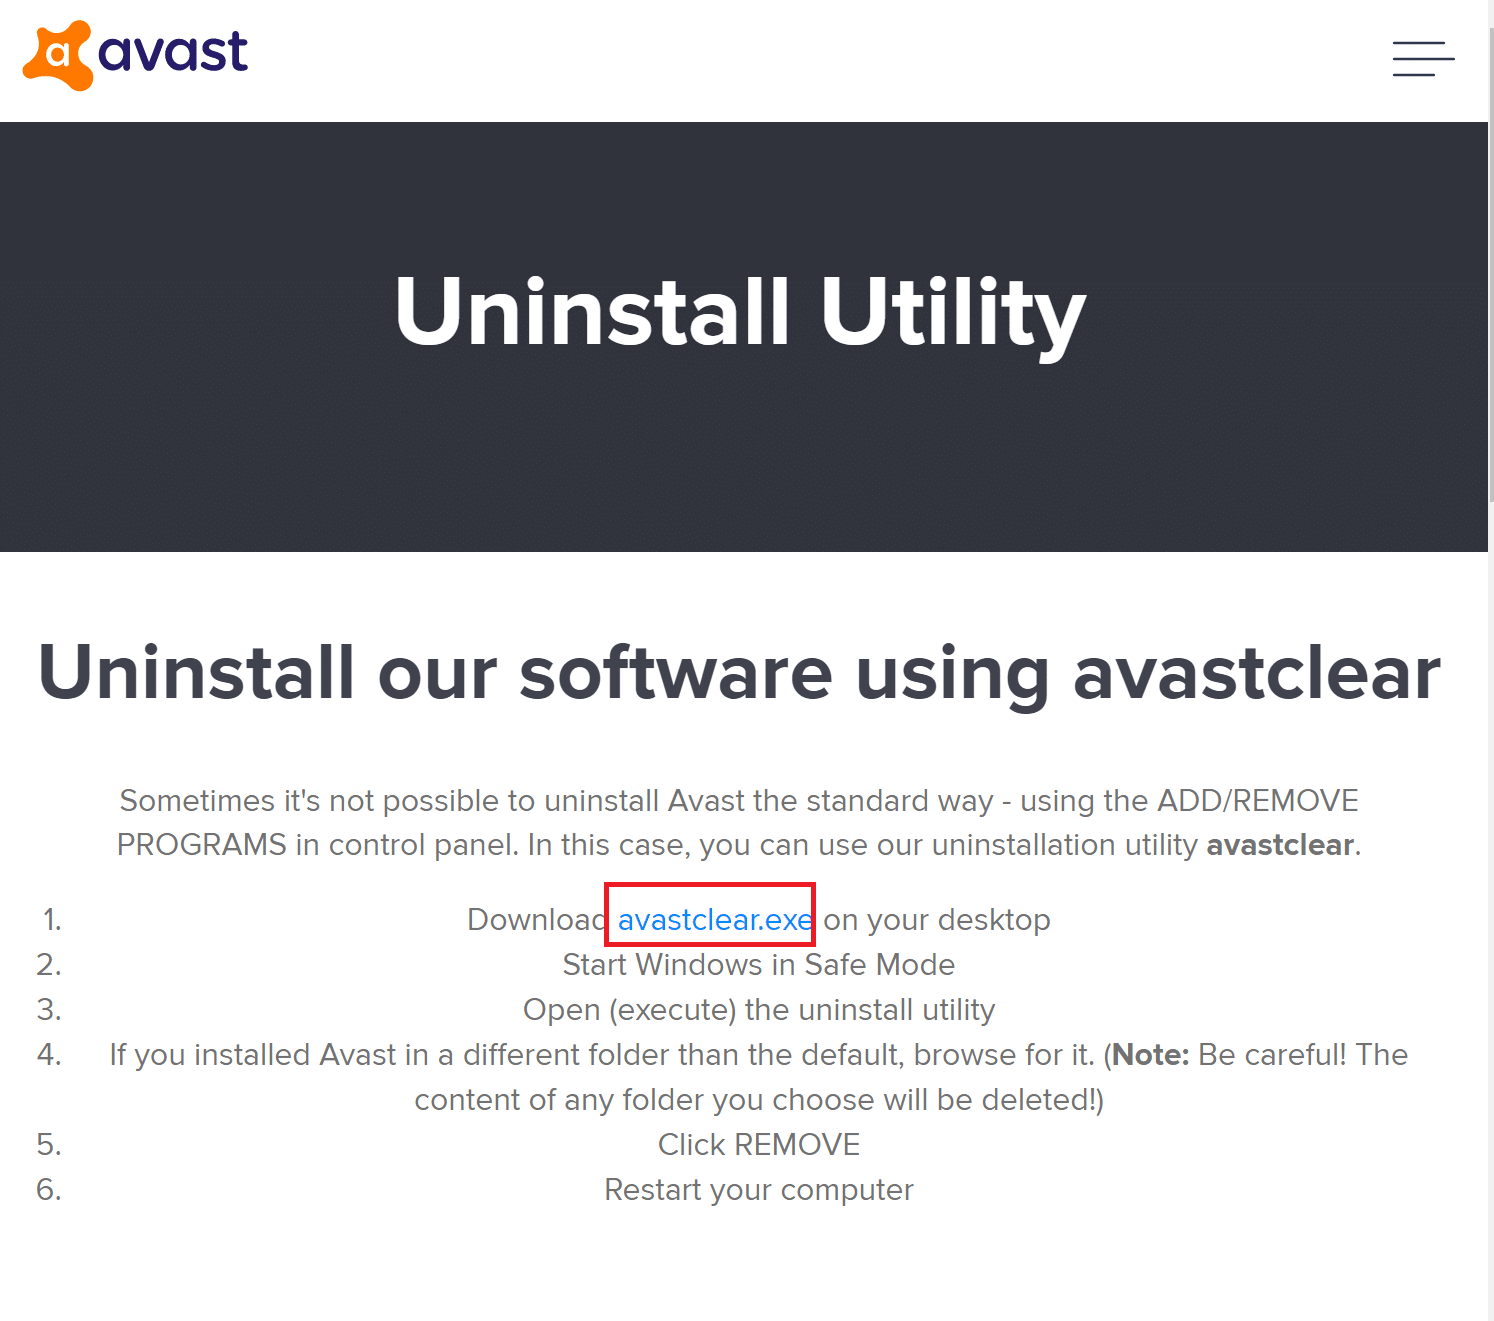 download avast uninstall utility from avast website